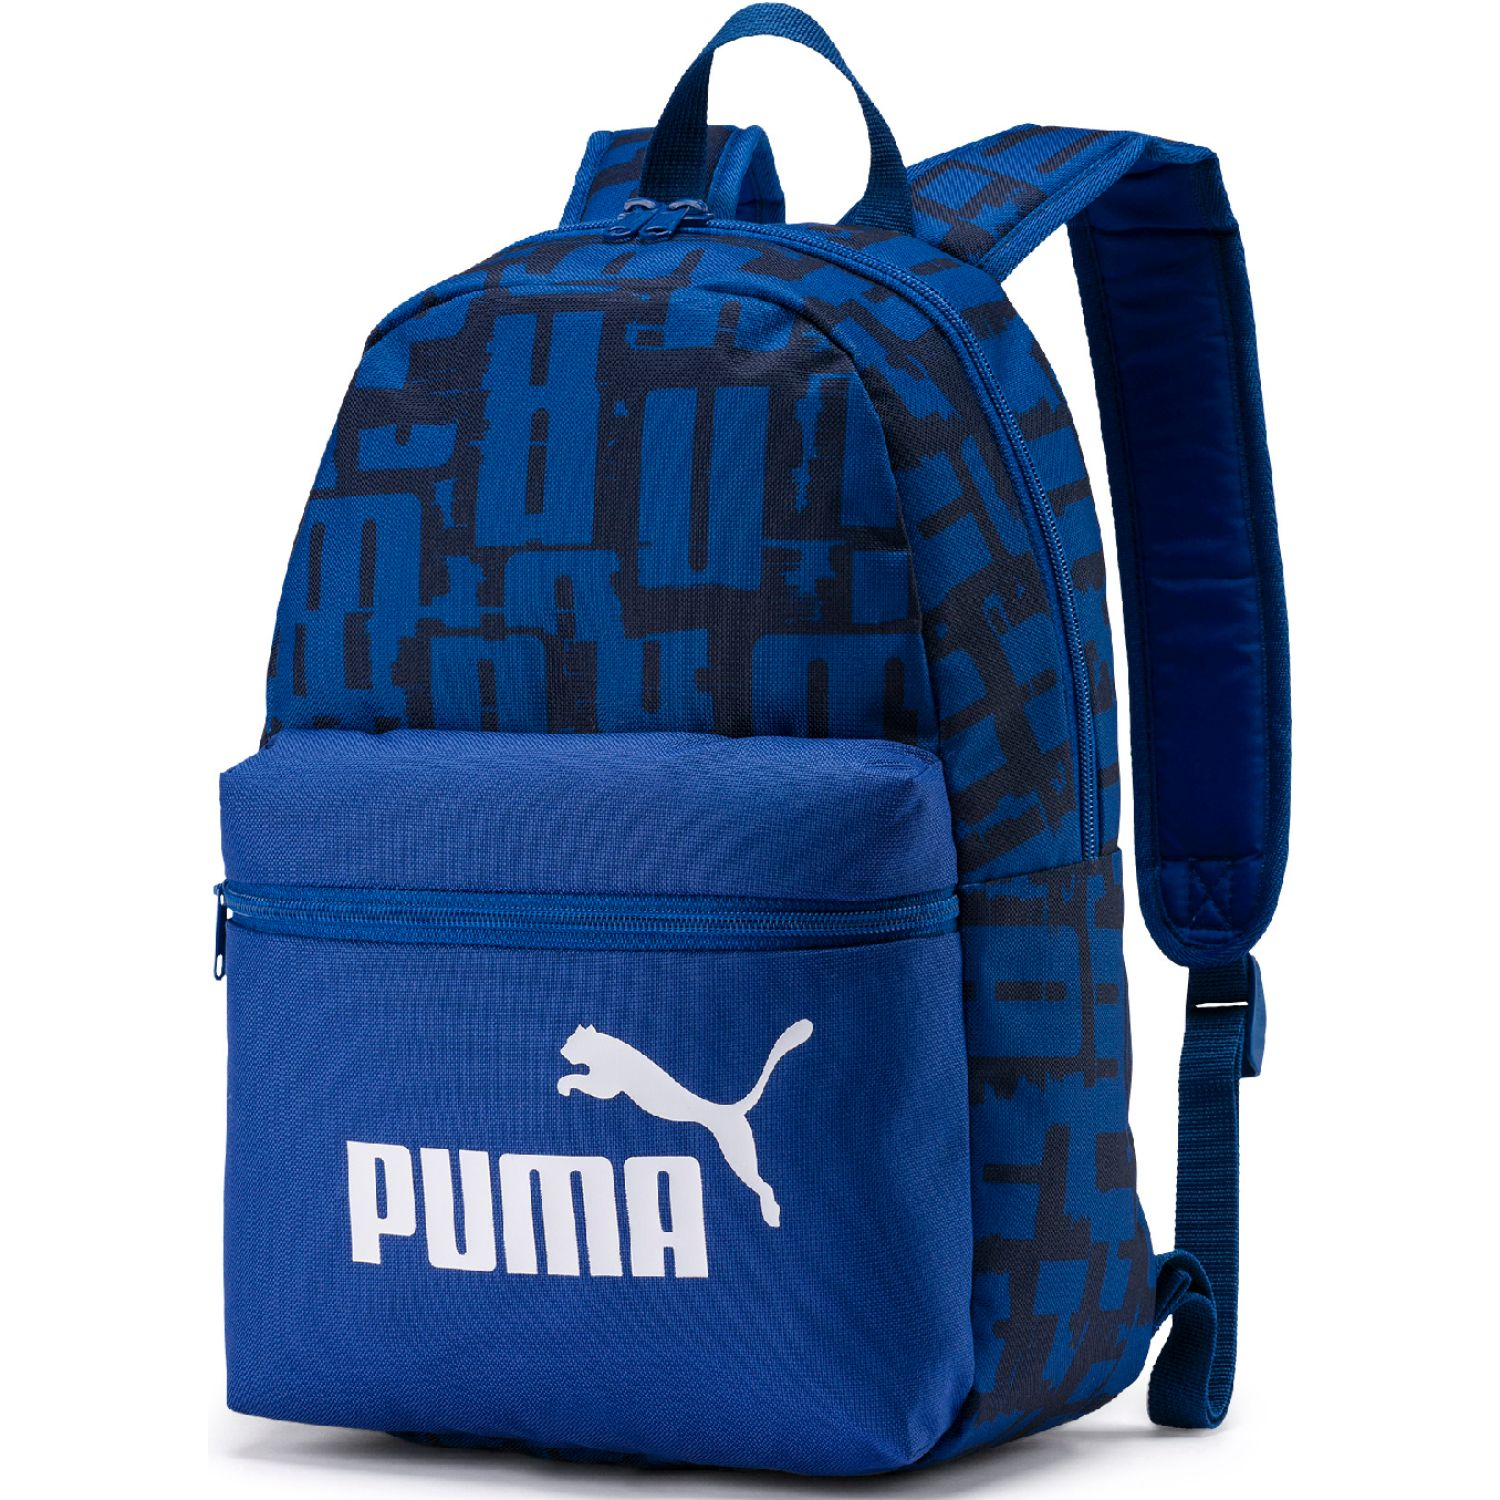 Puma puma phase small backpack Azul / blanco Mochilas Multipropósitos